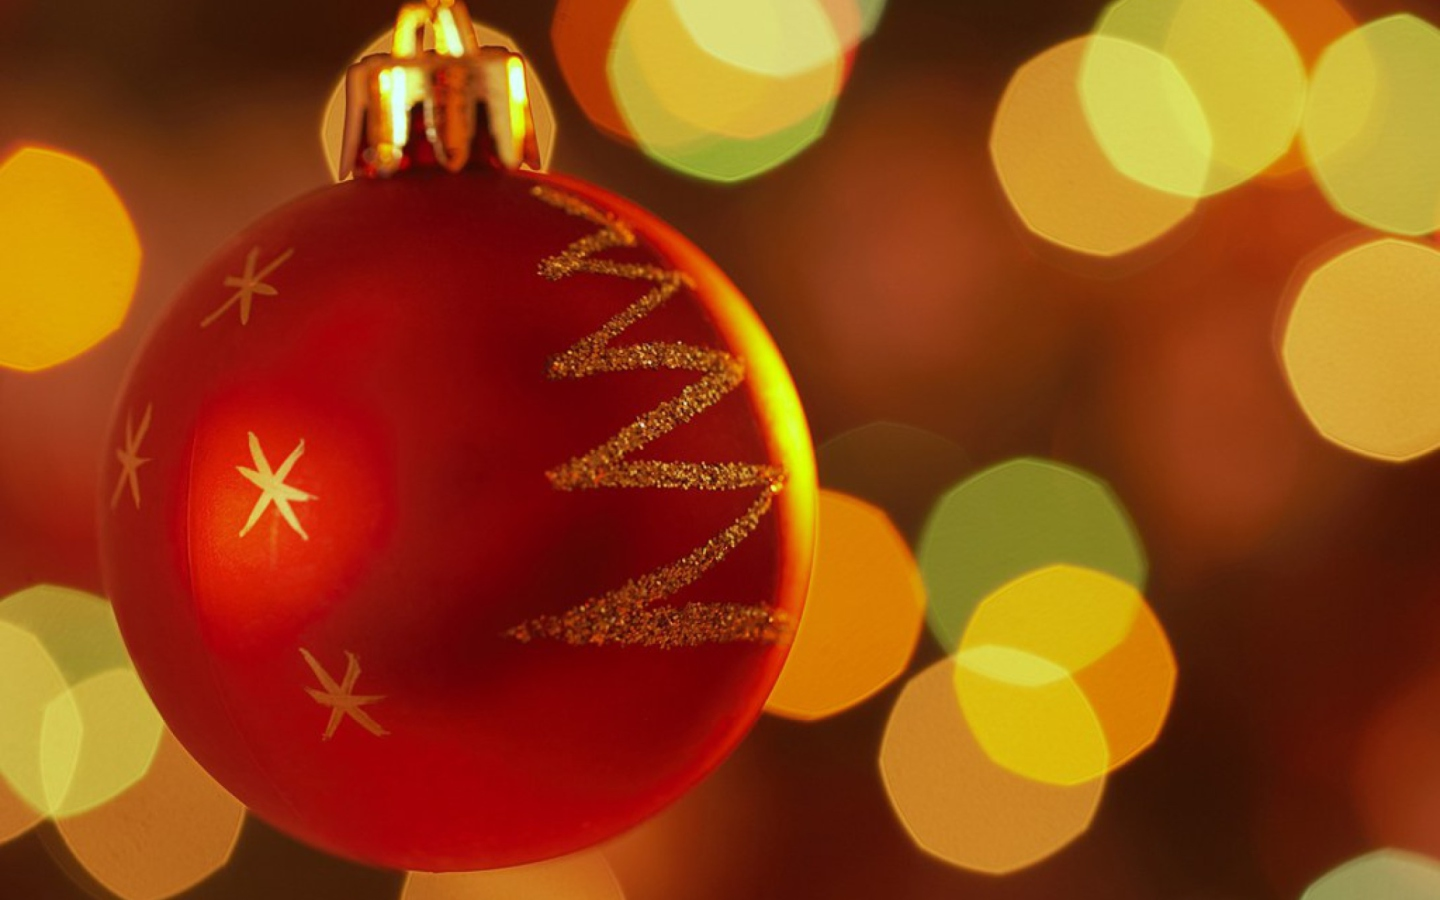 Christmas Decorations wallpaper 1440x900